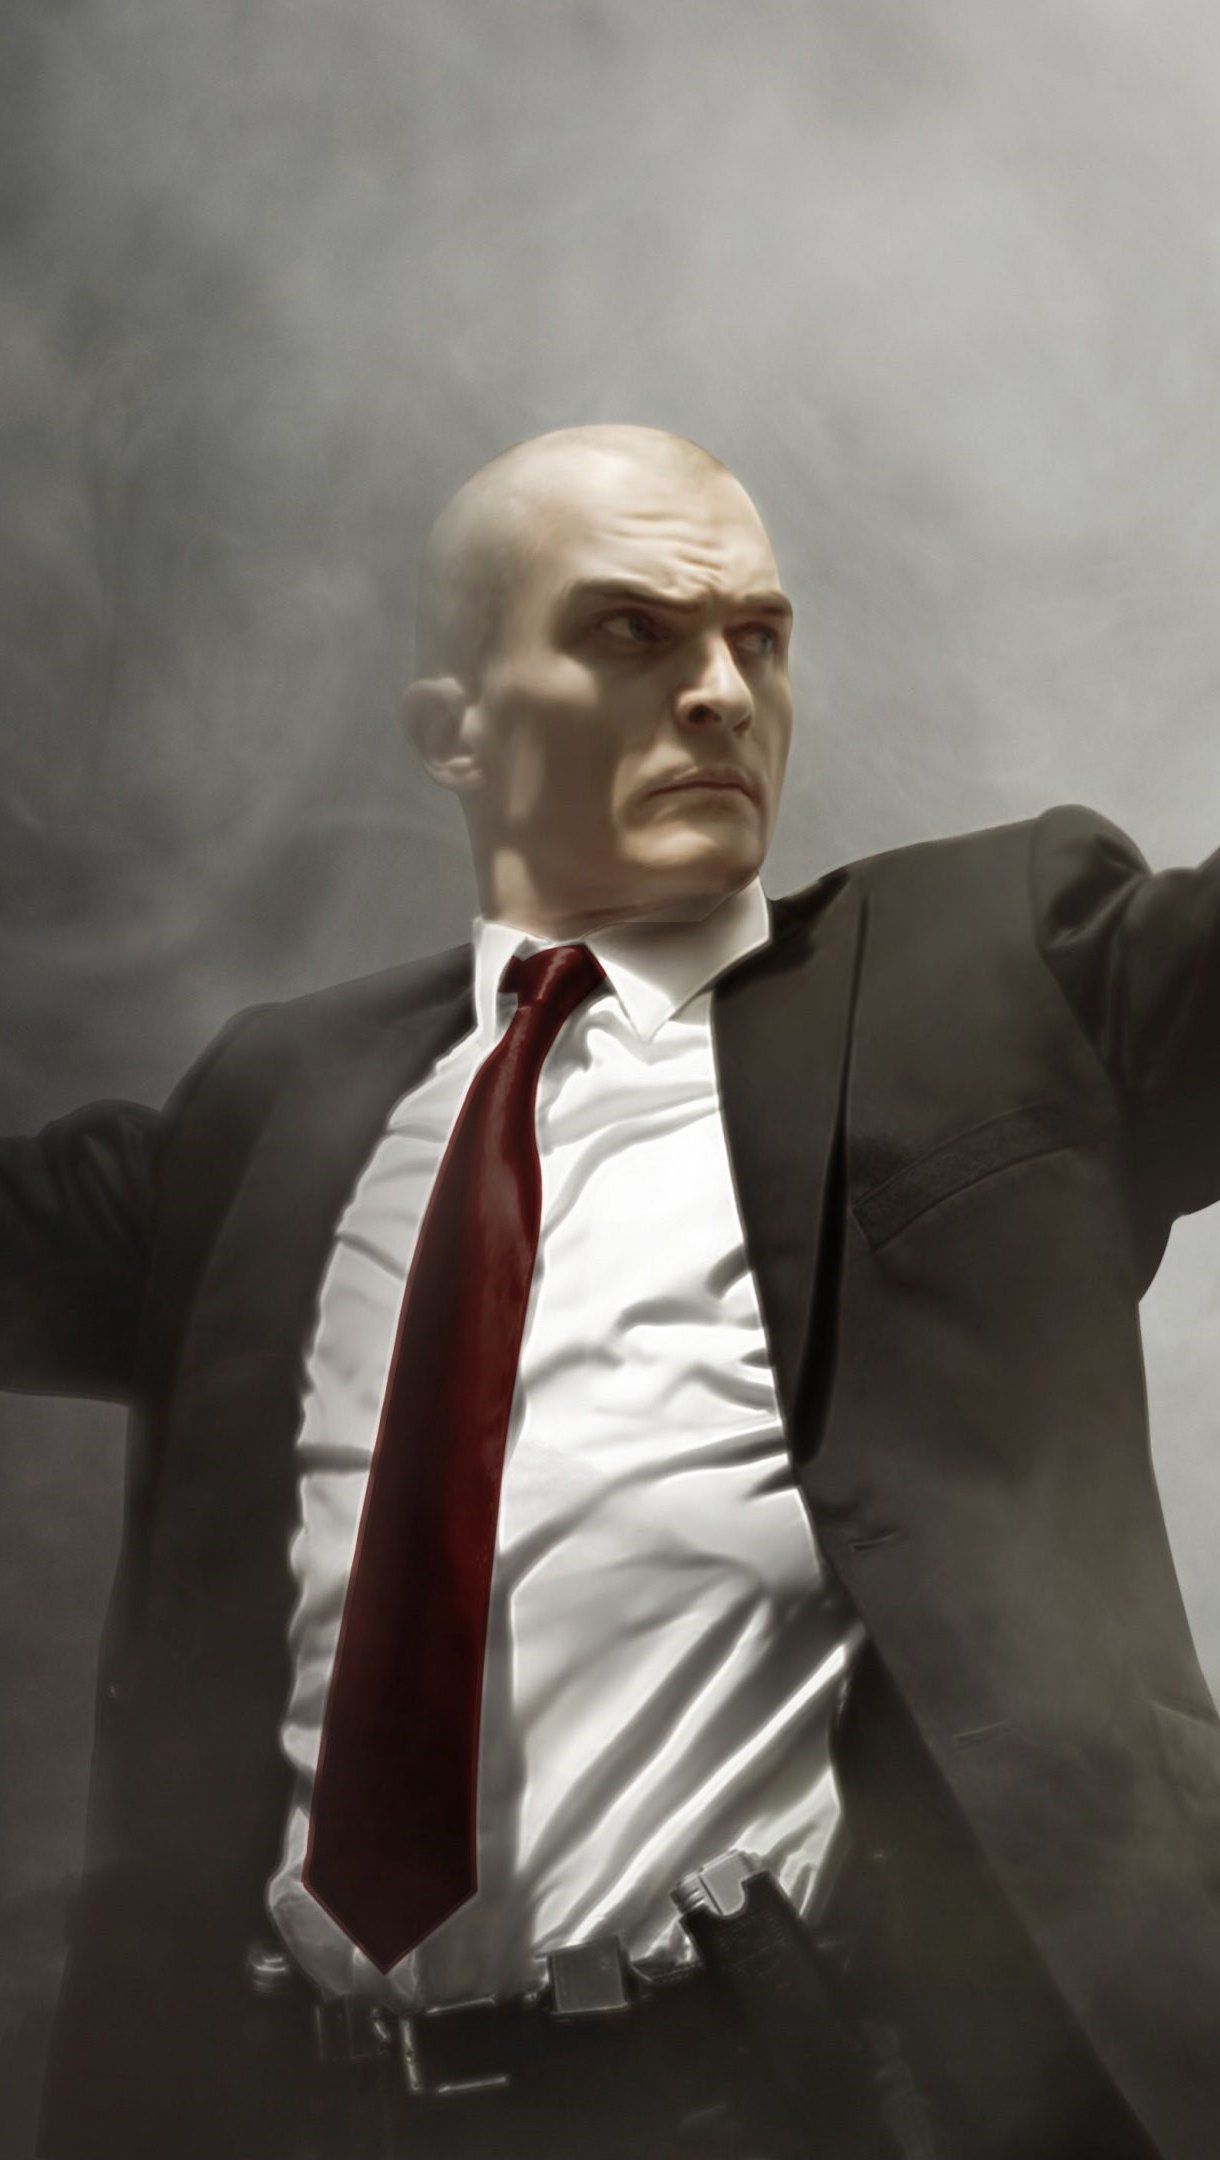 Wallpaper Fanart by Rupert Friend on Hitman Agent 47 Vertical